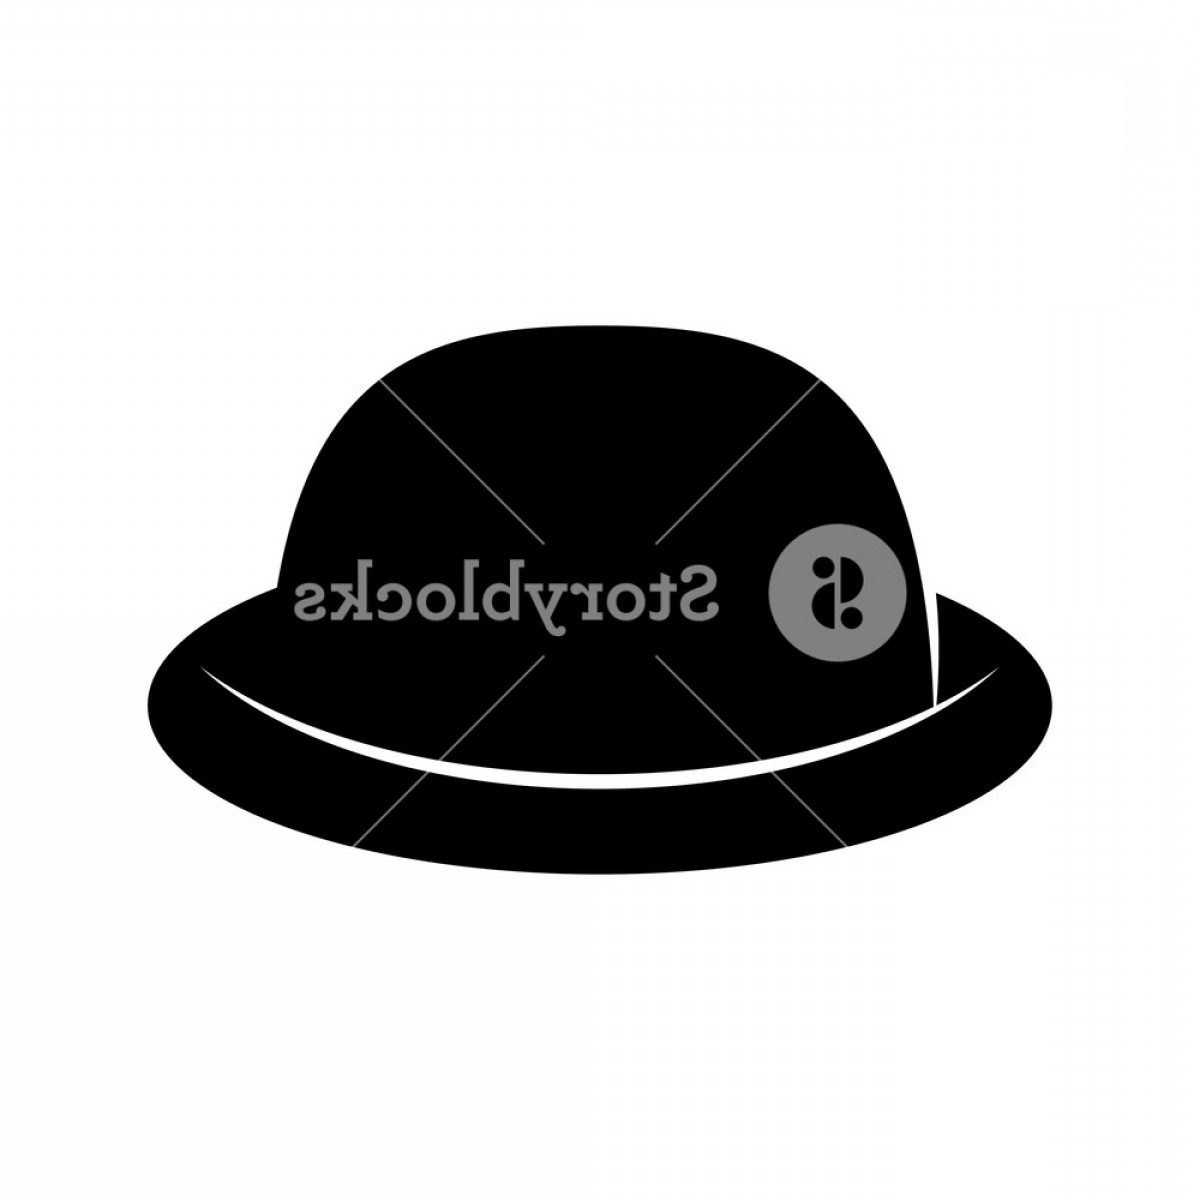 Bowler Hat Vector: Fashion Hat Womens Black Hat Lady Retro Hat Vector Illustration H Gkljhfwfjdoek